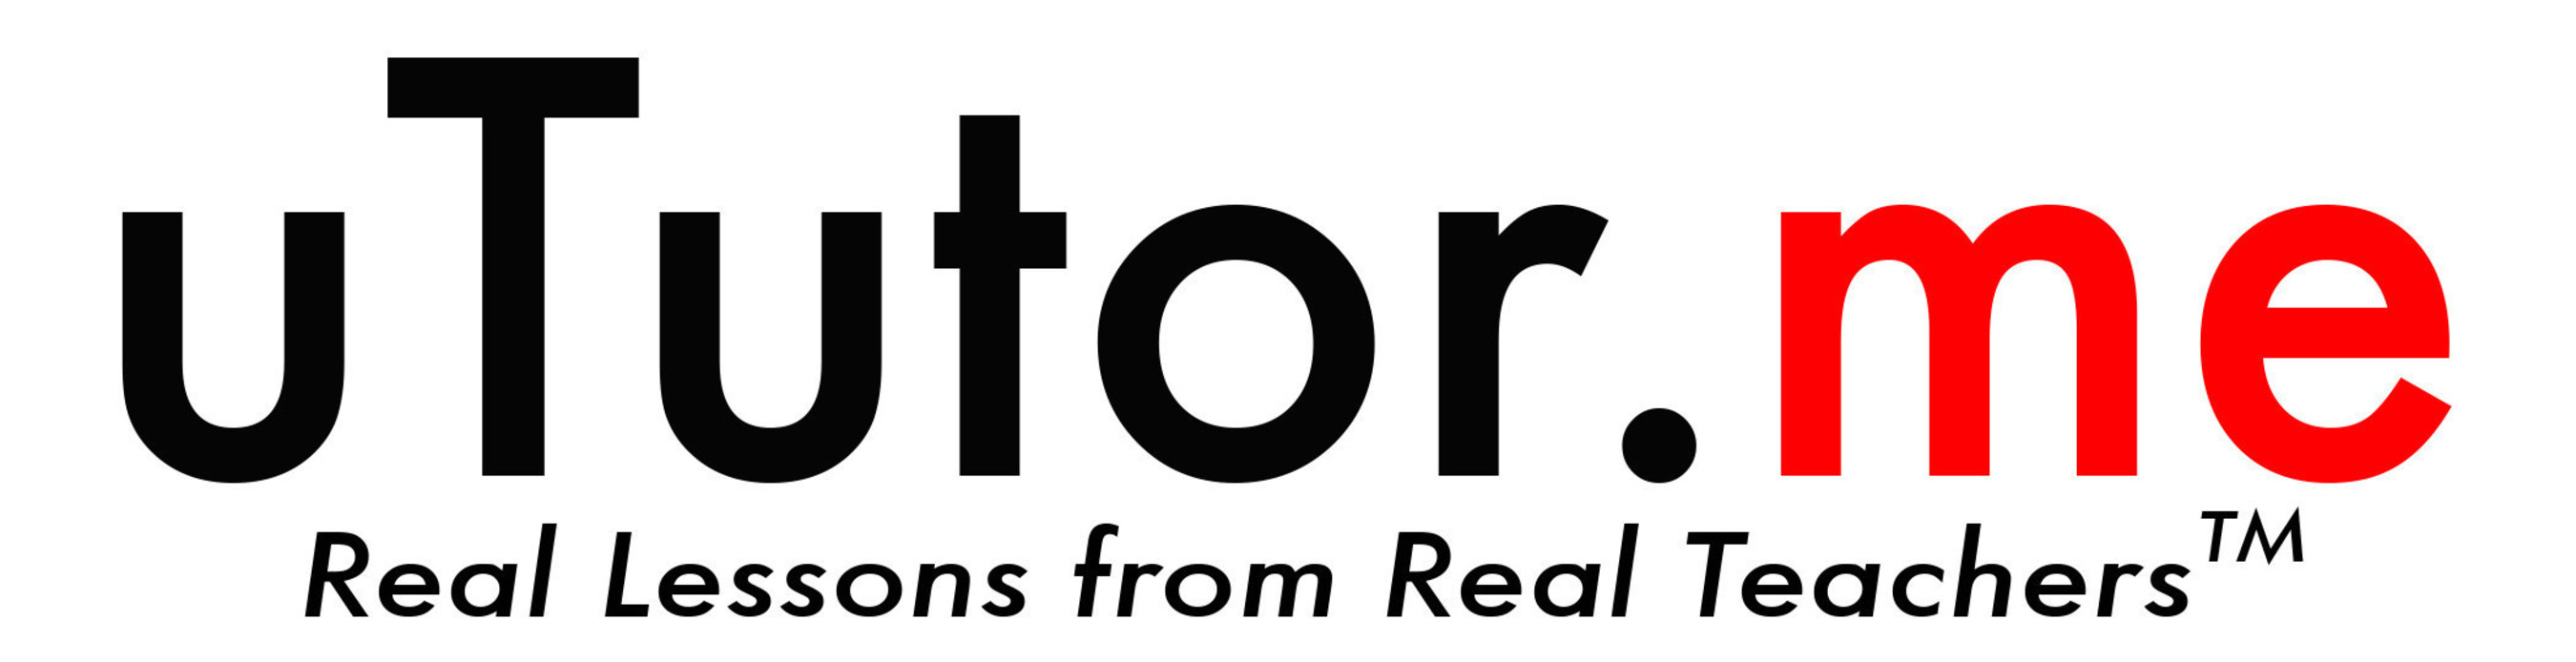 uTutor.me - Free Video Lesson Search